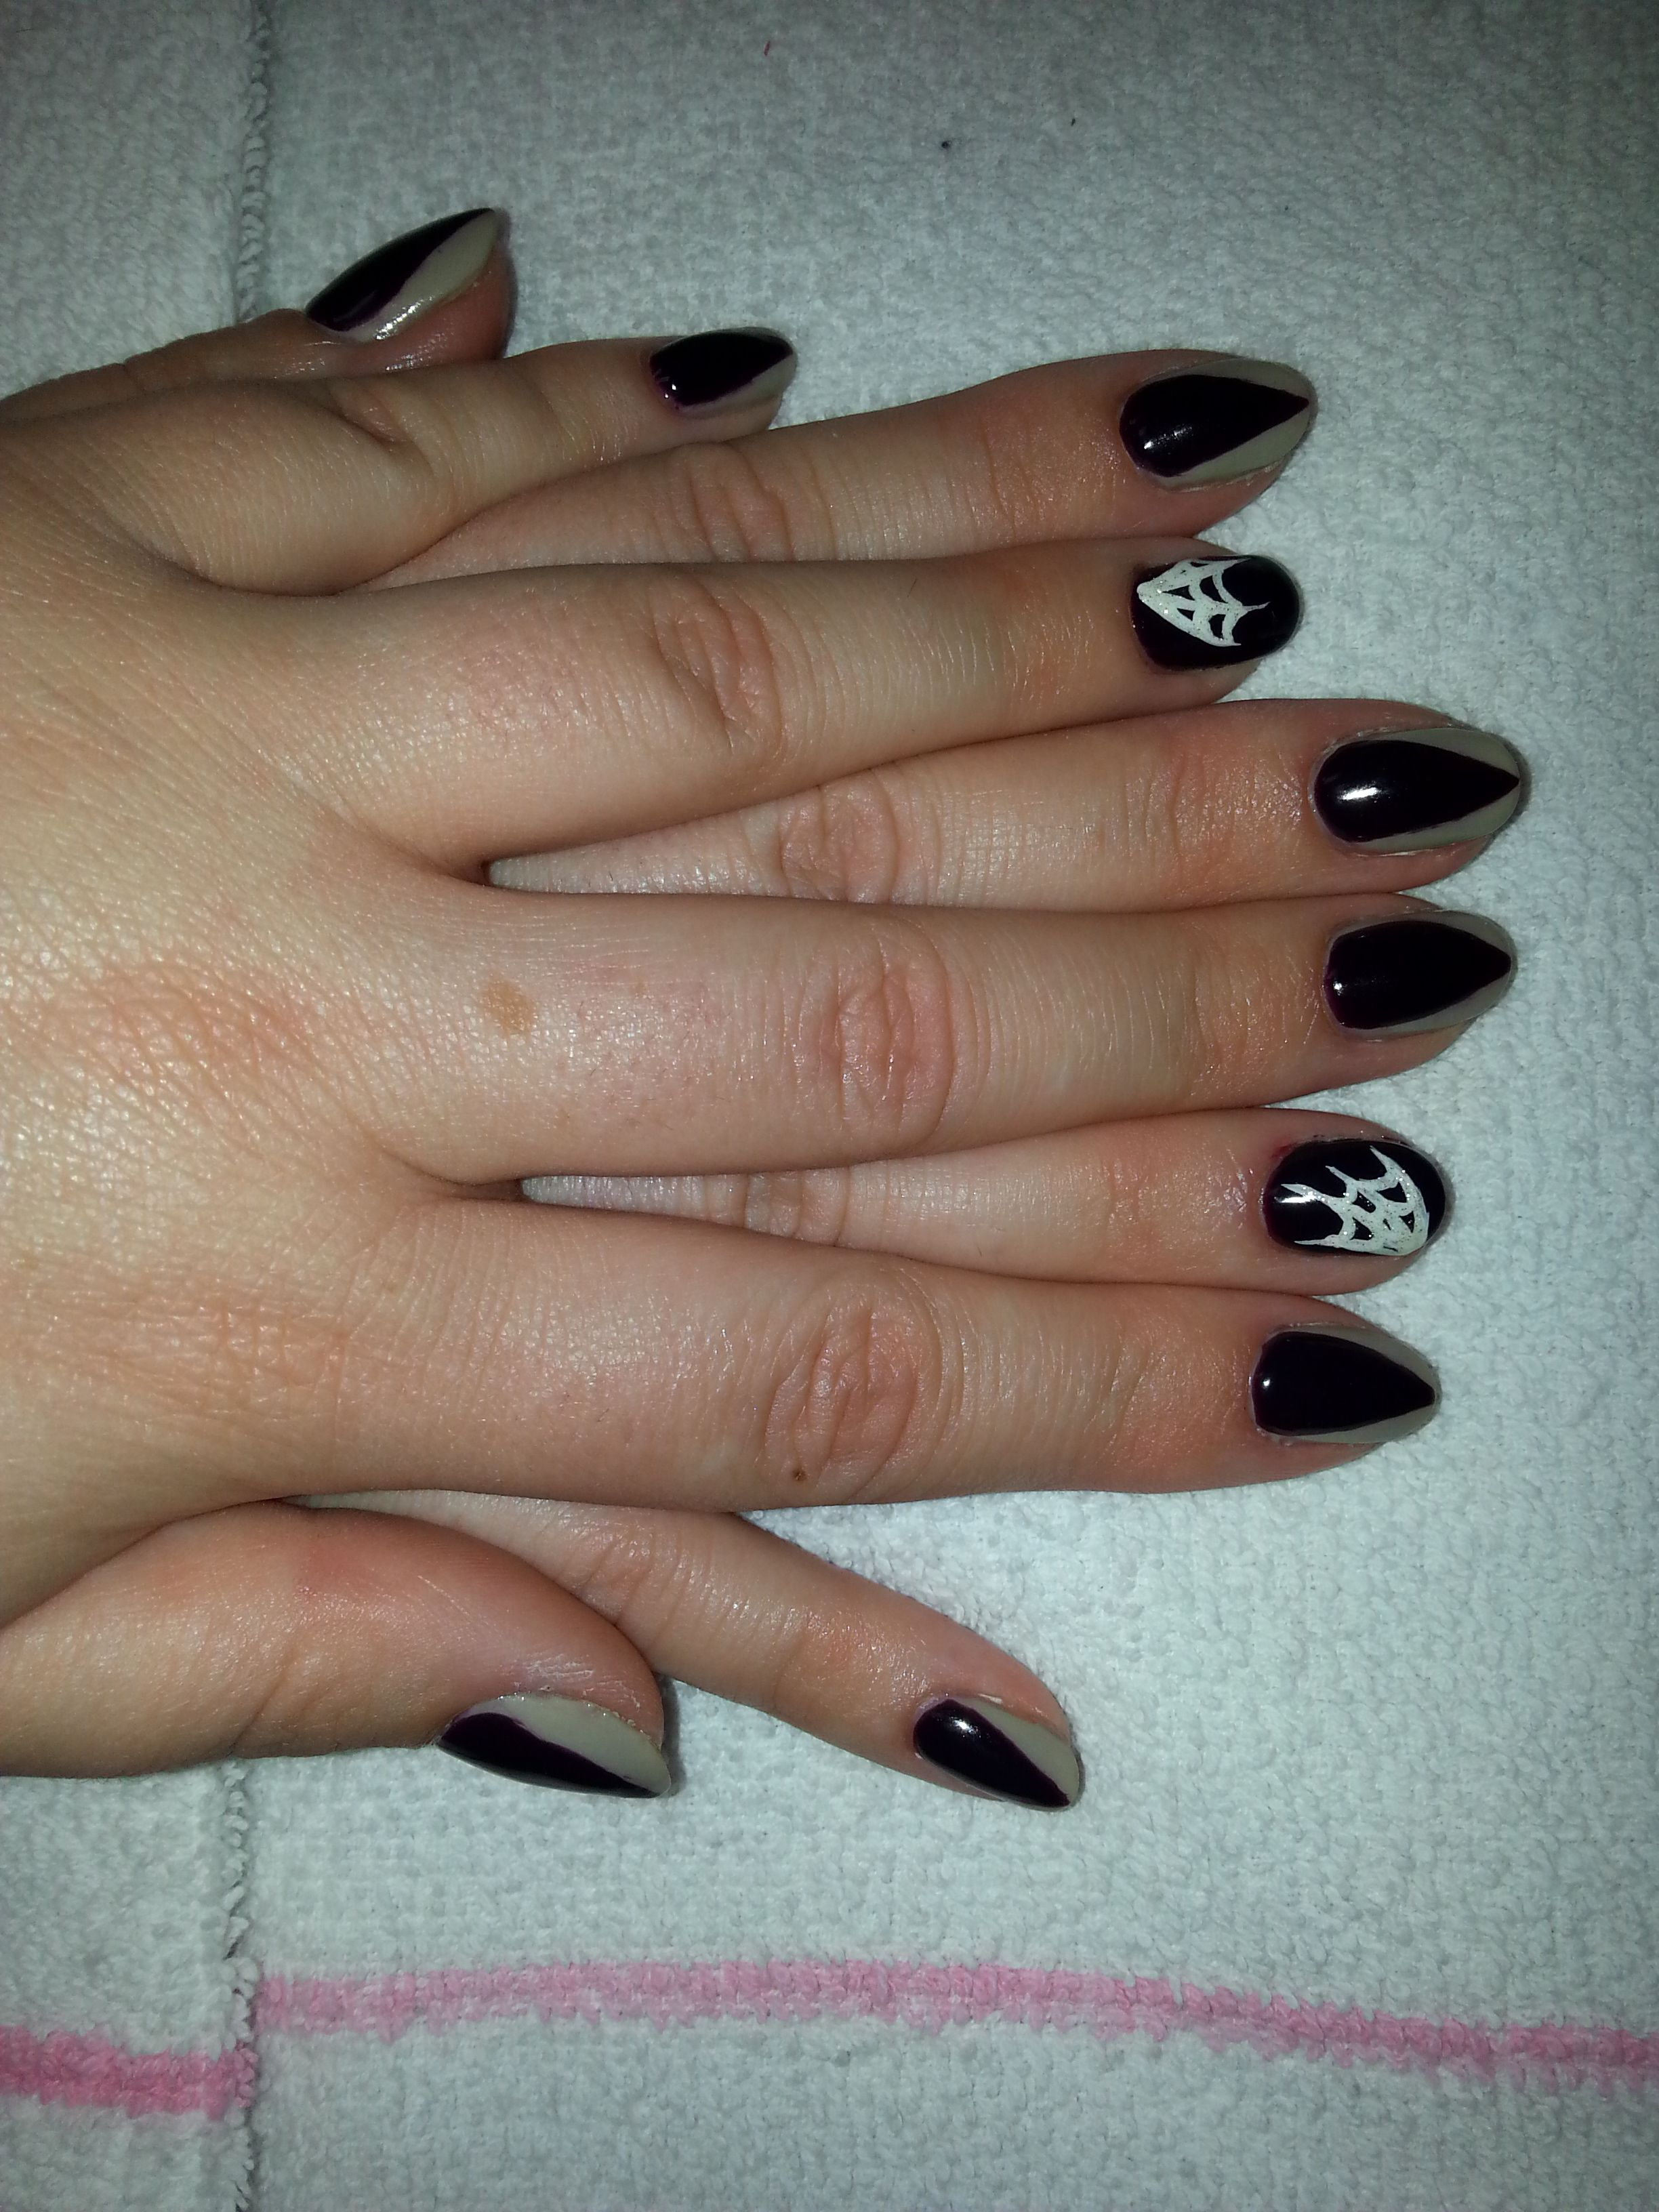 Halloween Nails - claws and spiderwebs | Halloween nails ...